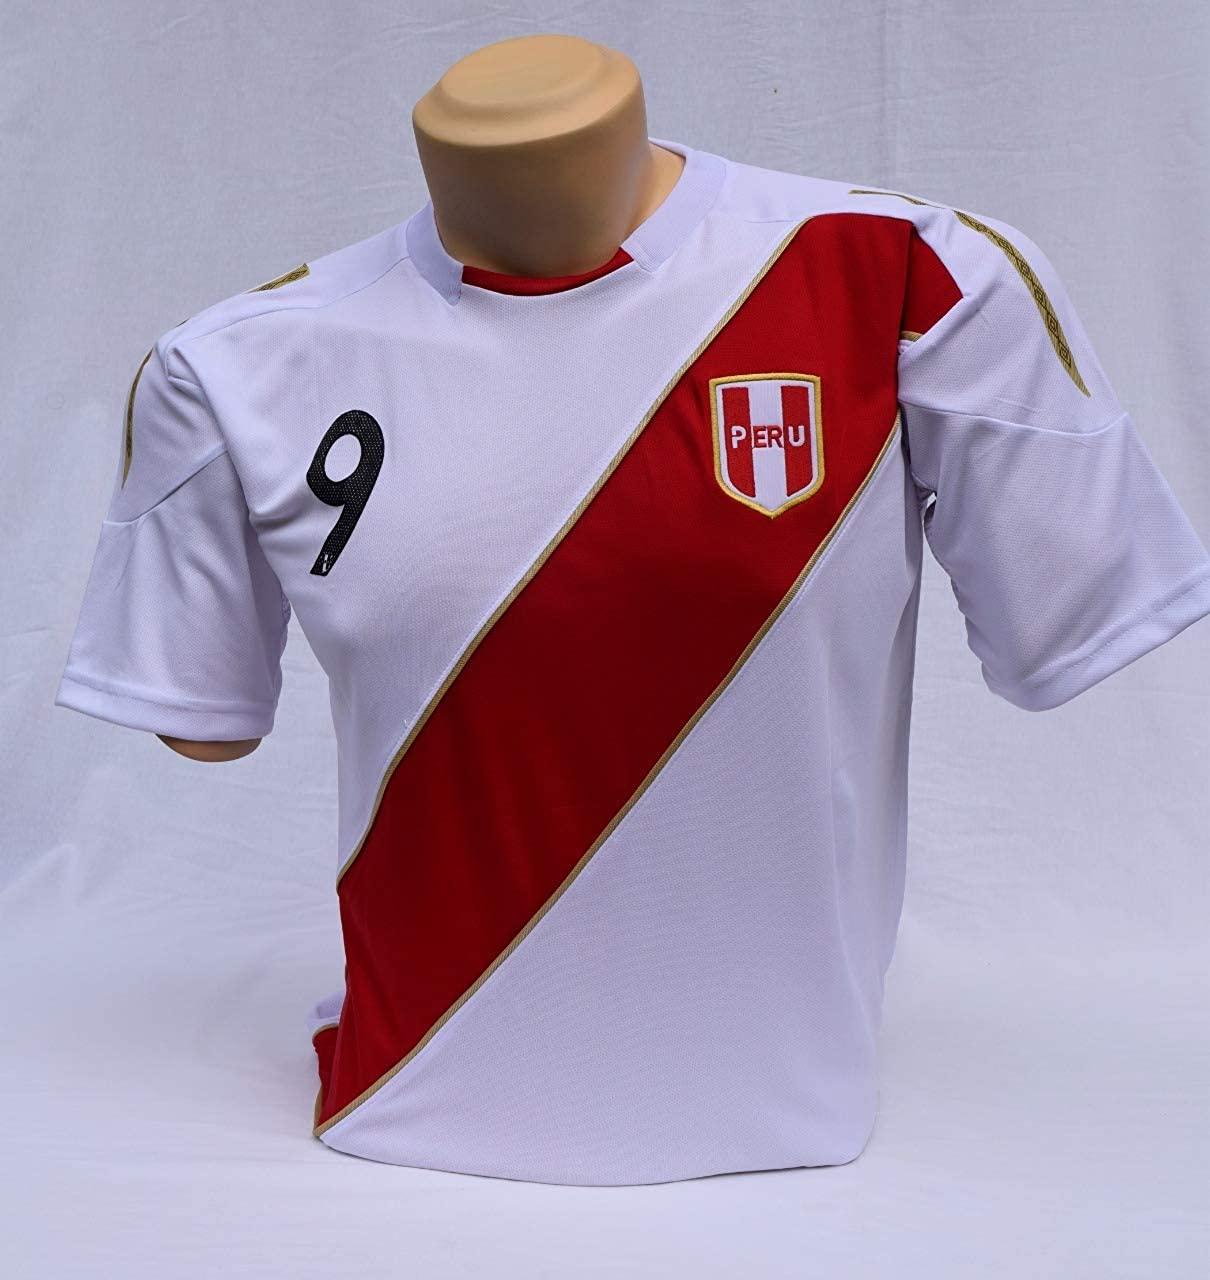 Peru Soccer Jersey . Size S(Small)  Support Your Team during Soccer